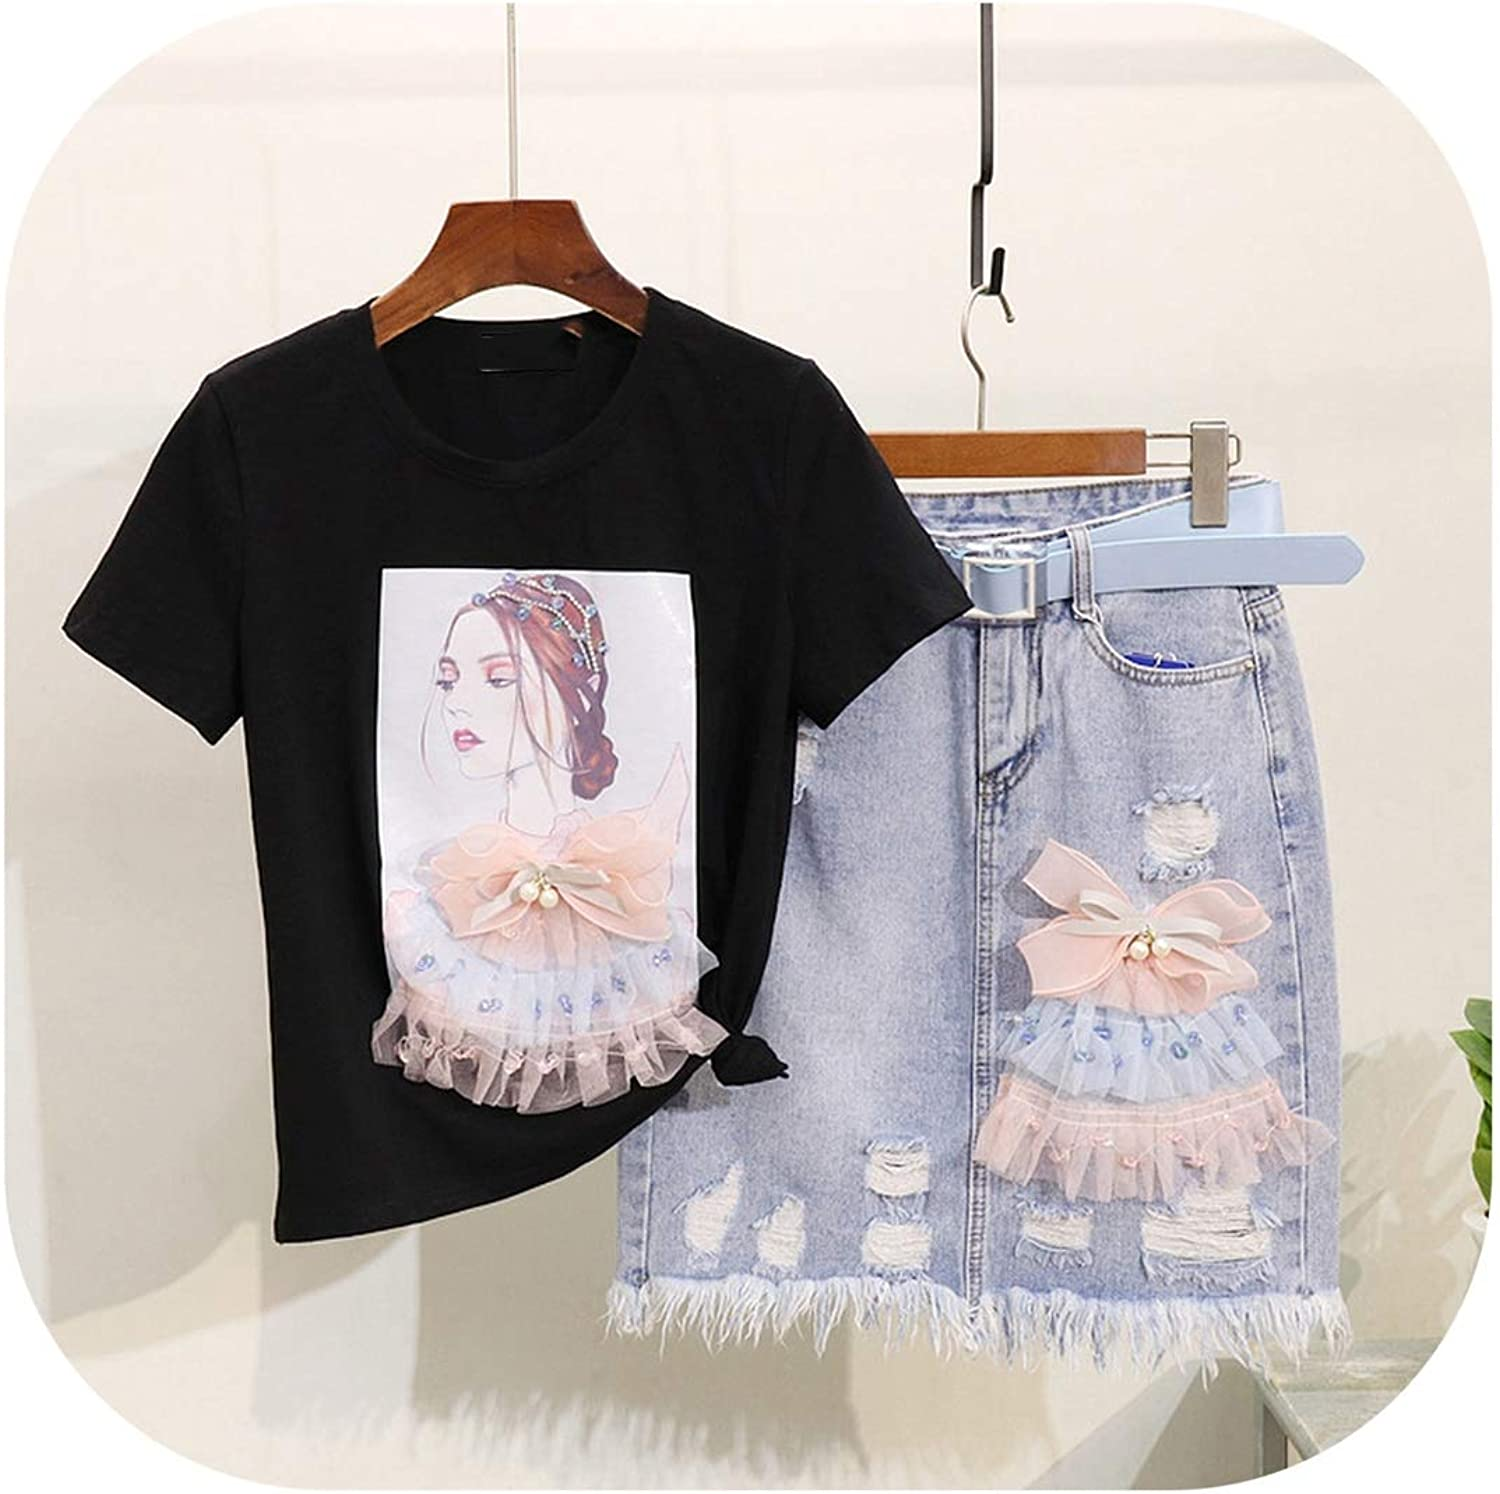 Enjoypeak Denim Skirt Suits Women Summer Dress New Bow Knot Beauty Girl Print ShortSleeve Tshirt+Hole Package